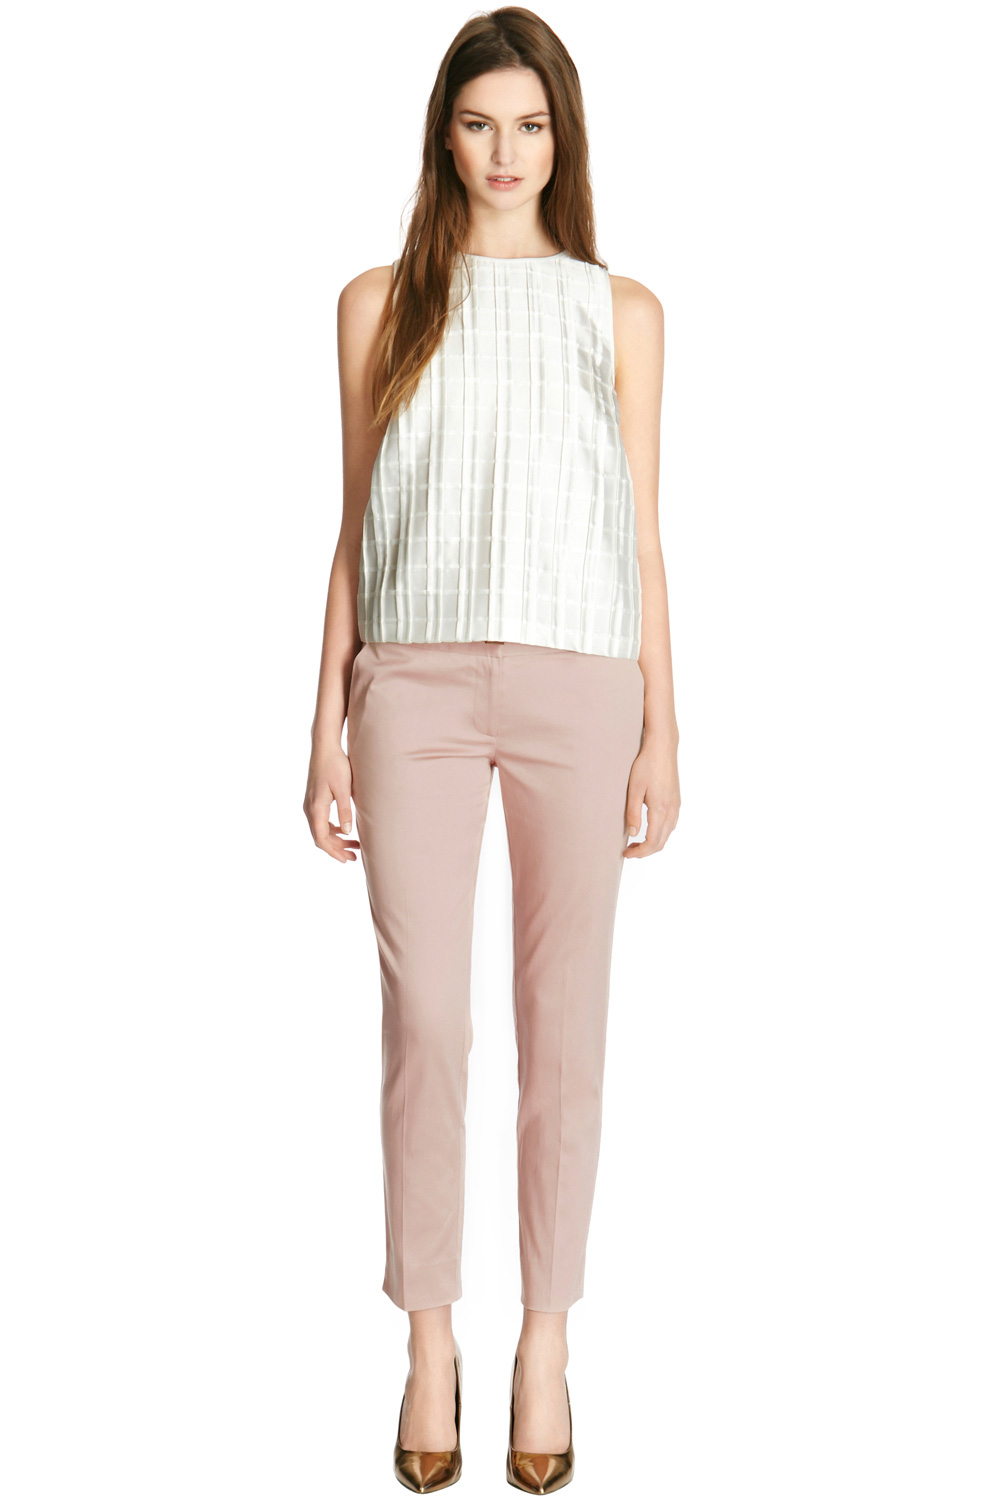 Warehouse Cotton Sateen Trousers